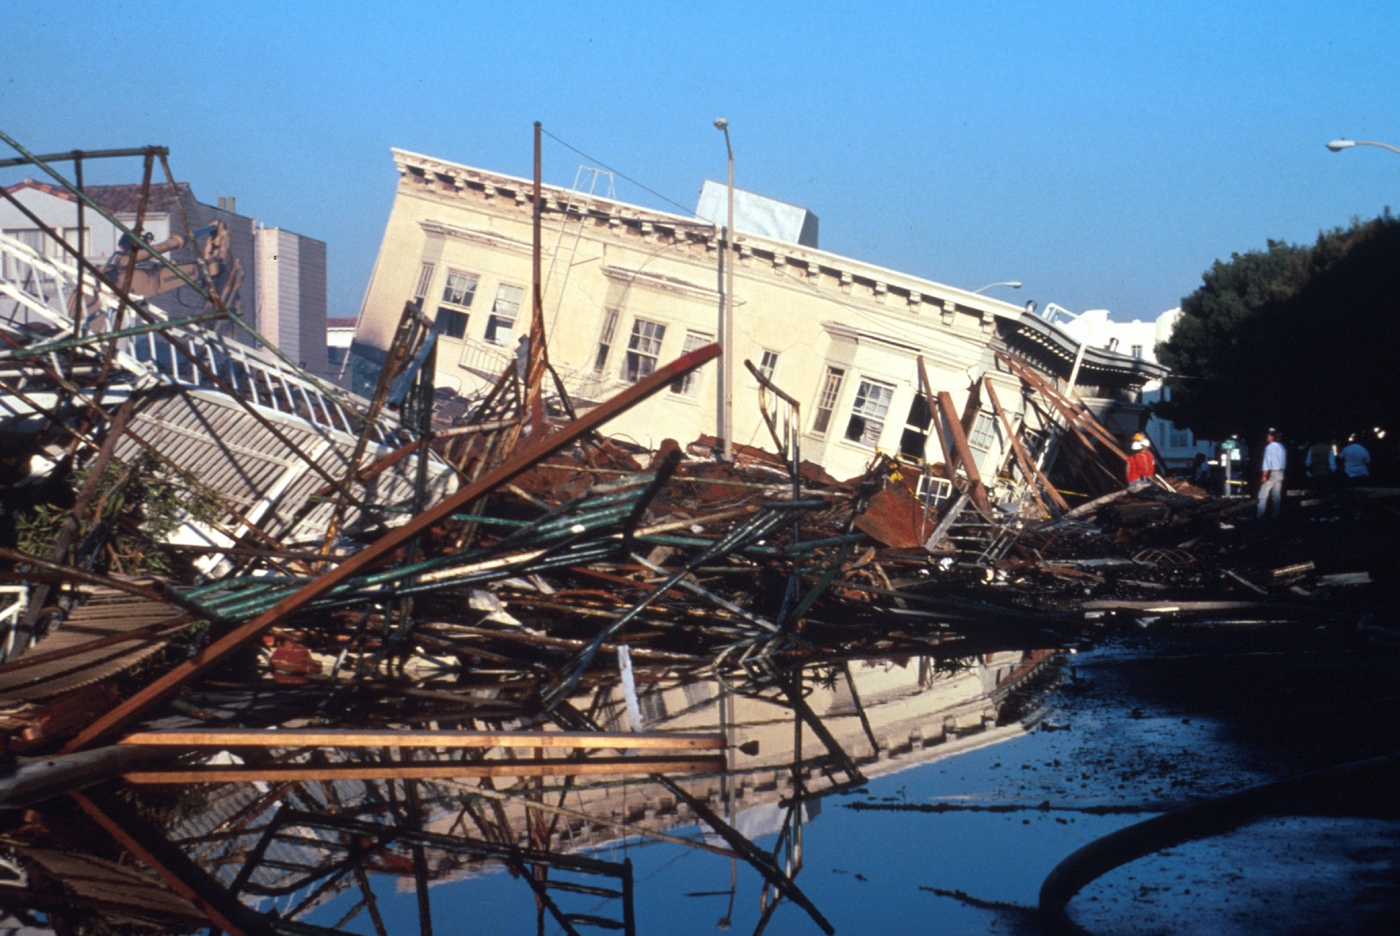 The Marina District of San Francisco was hit hard by the Loma Prieta earthquake.